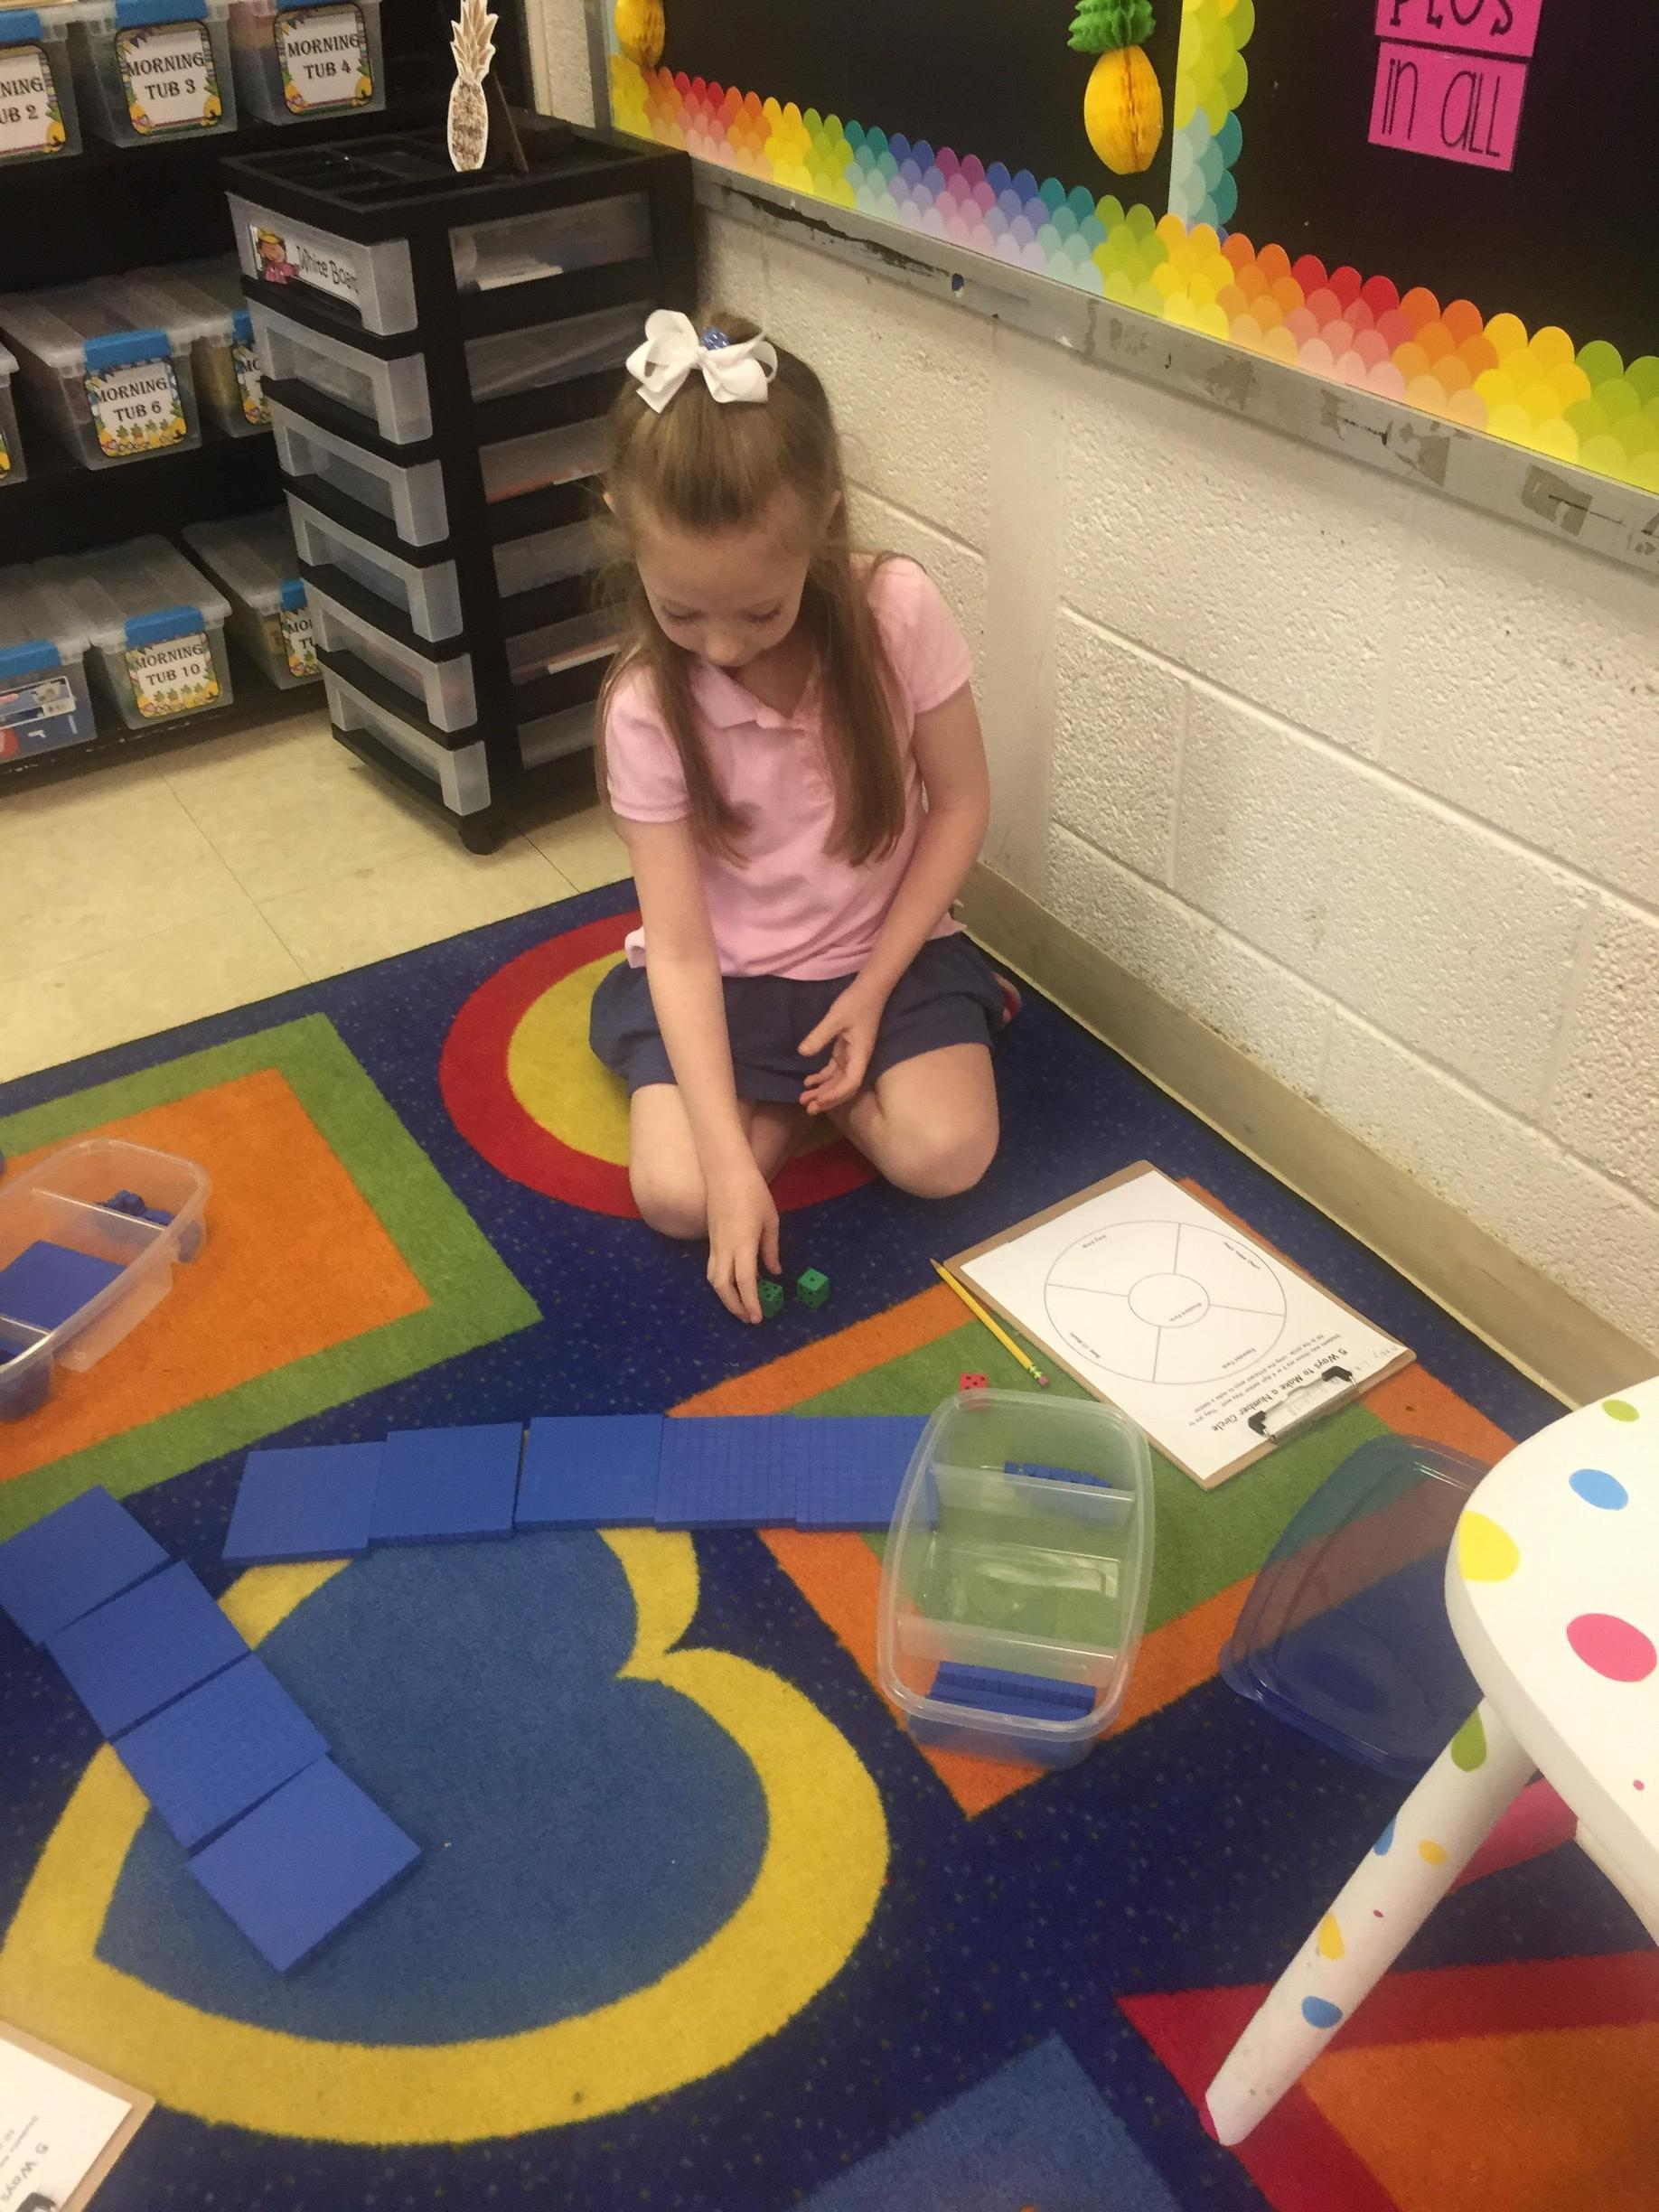 Second grade student working on a document independently